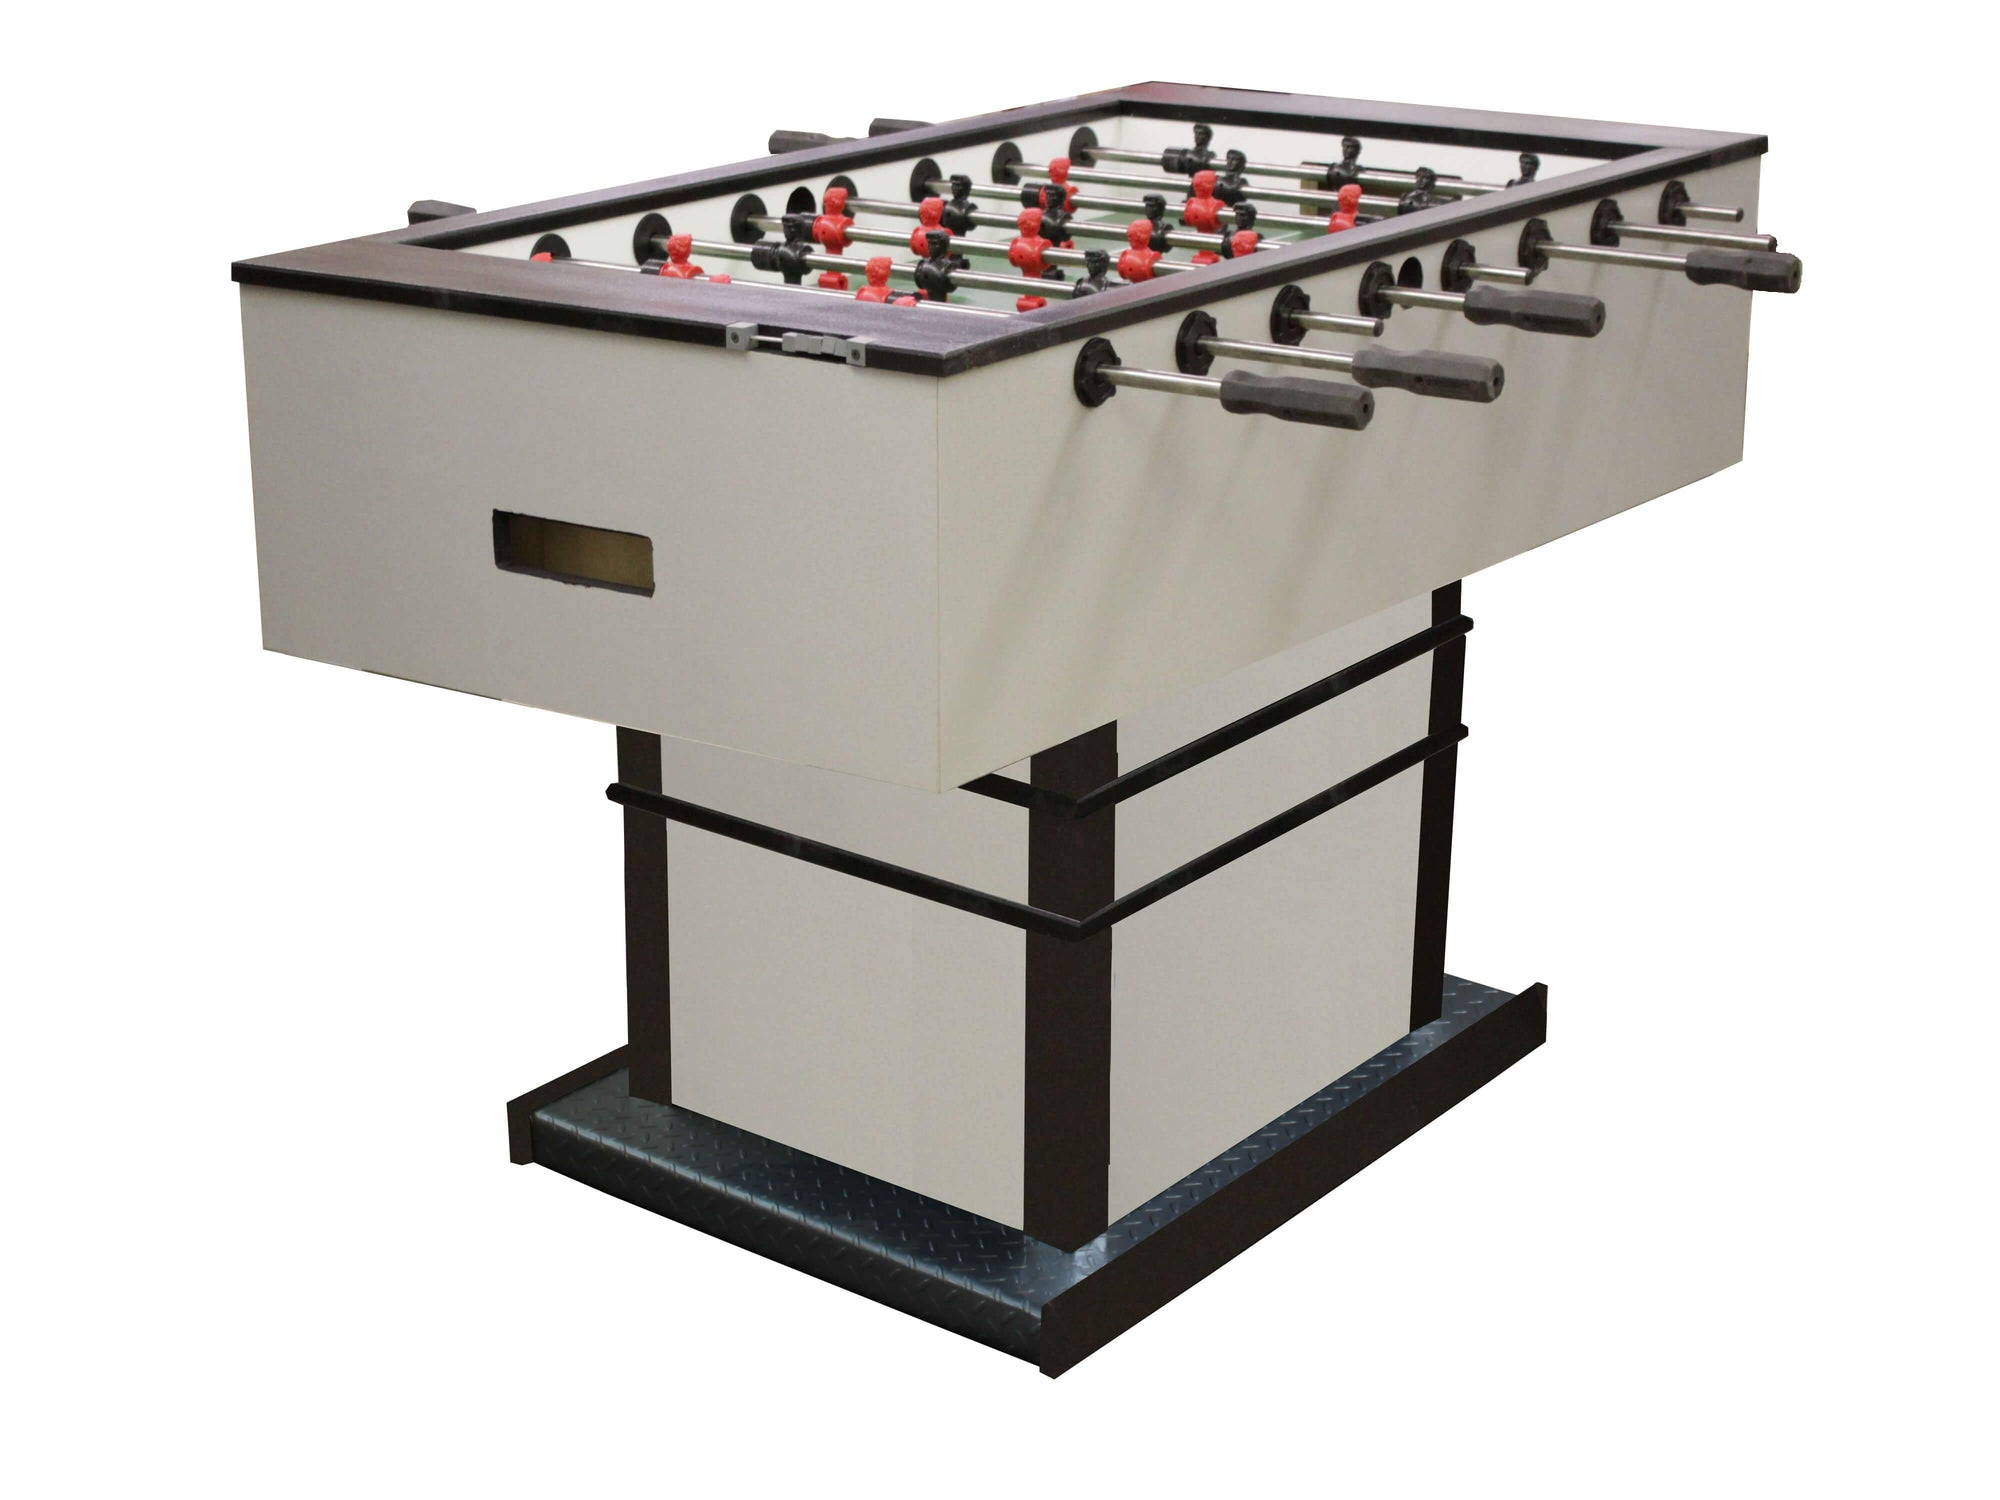 "Performance Games Sure Shot IS Pedestal Base Black Legs Foosball Table 56"" - Gaming Blaze"